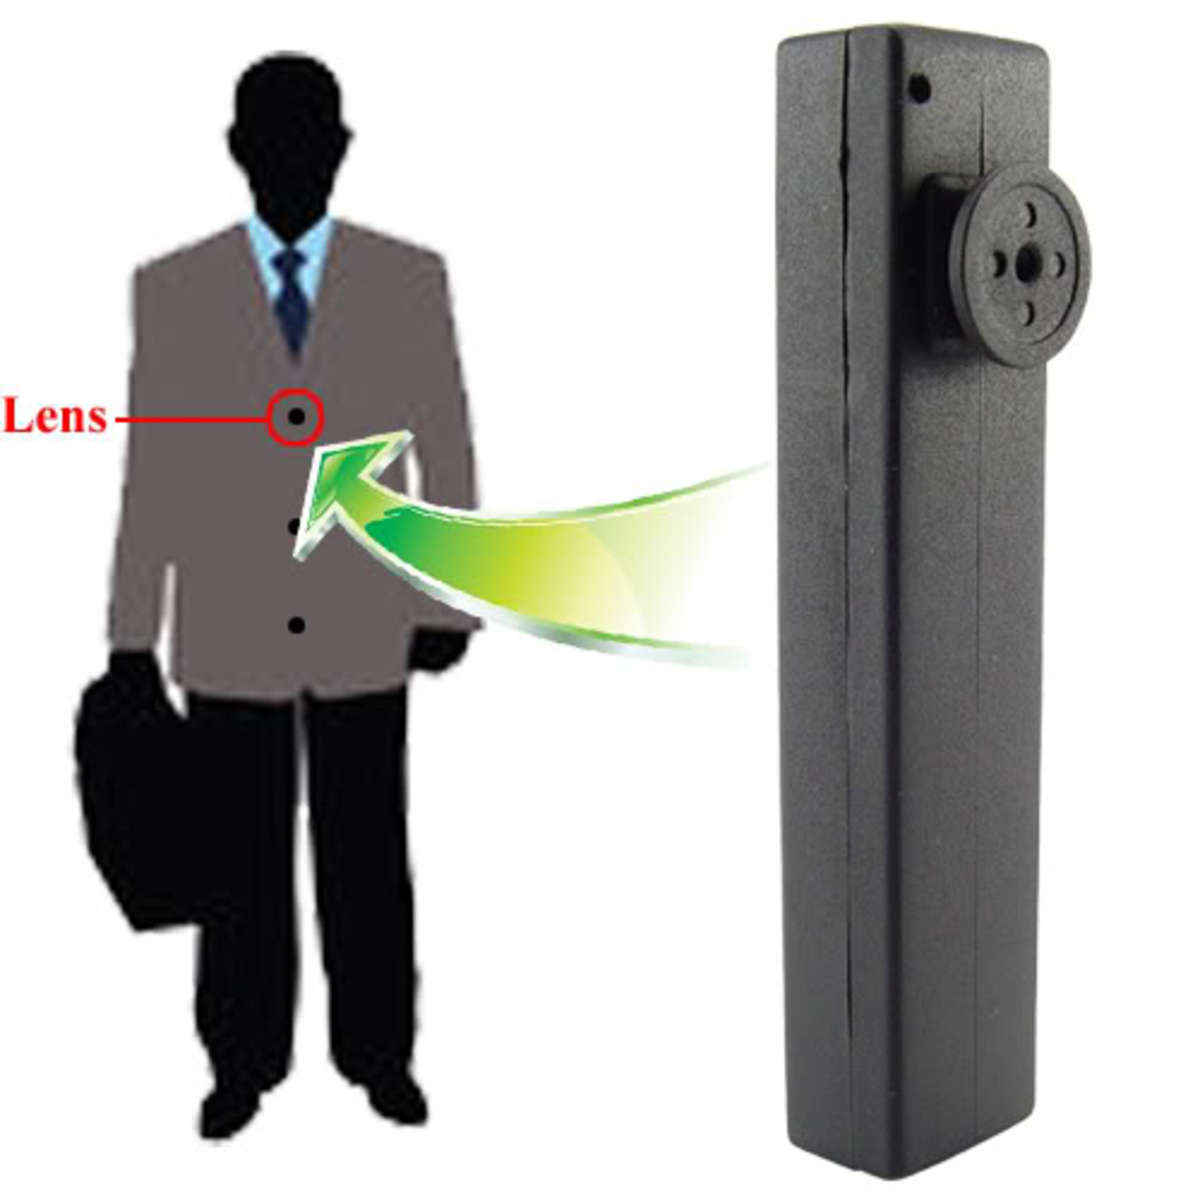 10 Different Types of Spycam Gadgets